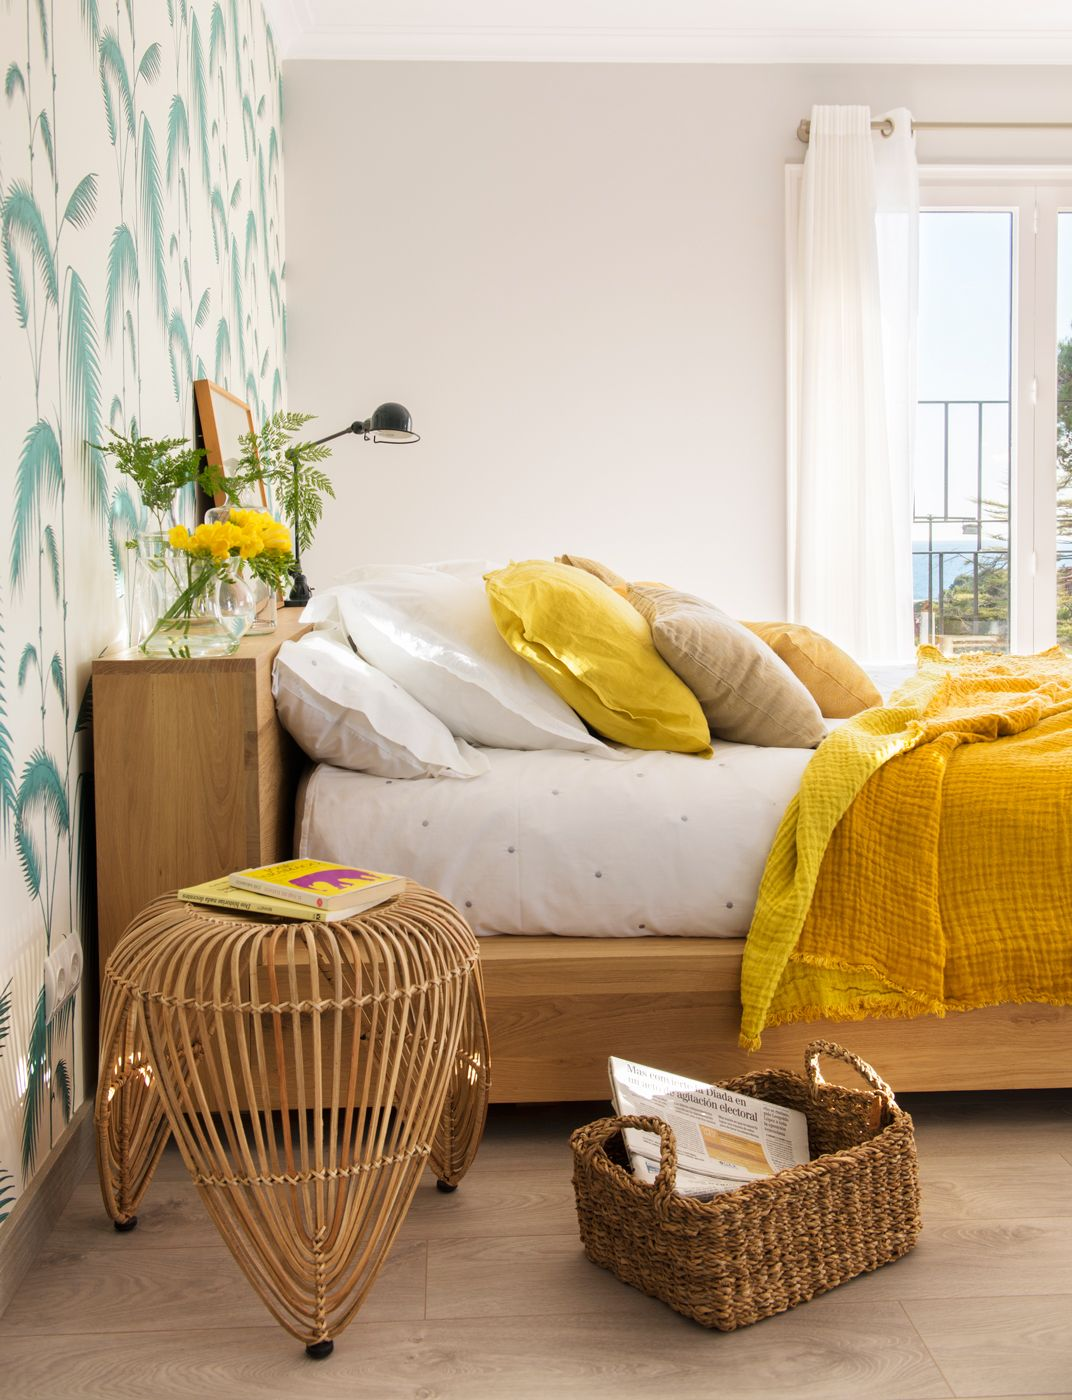 dormitorio de aire tropical con papel de pared en verde